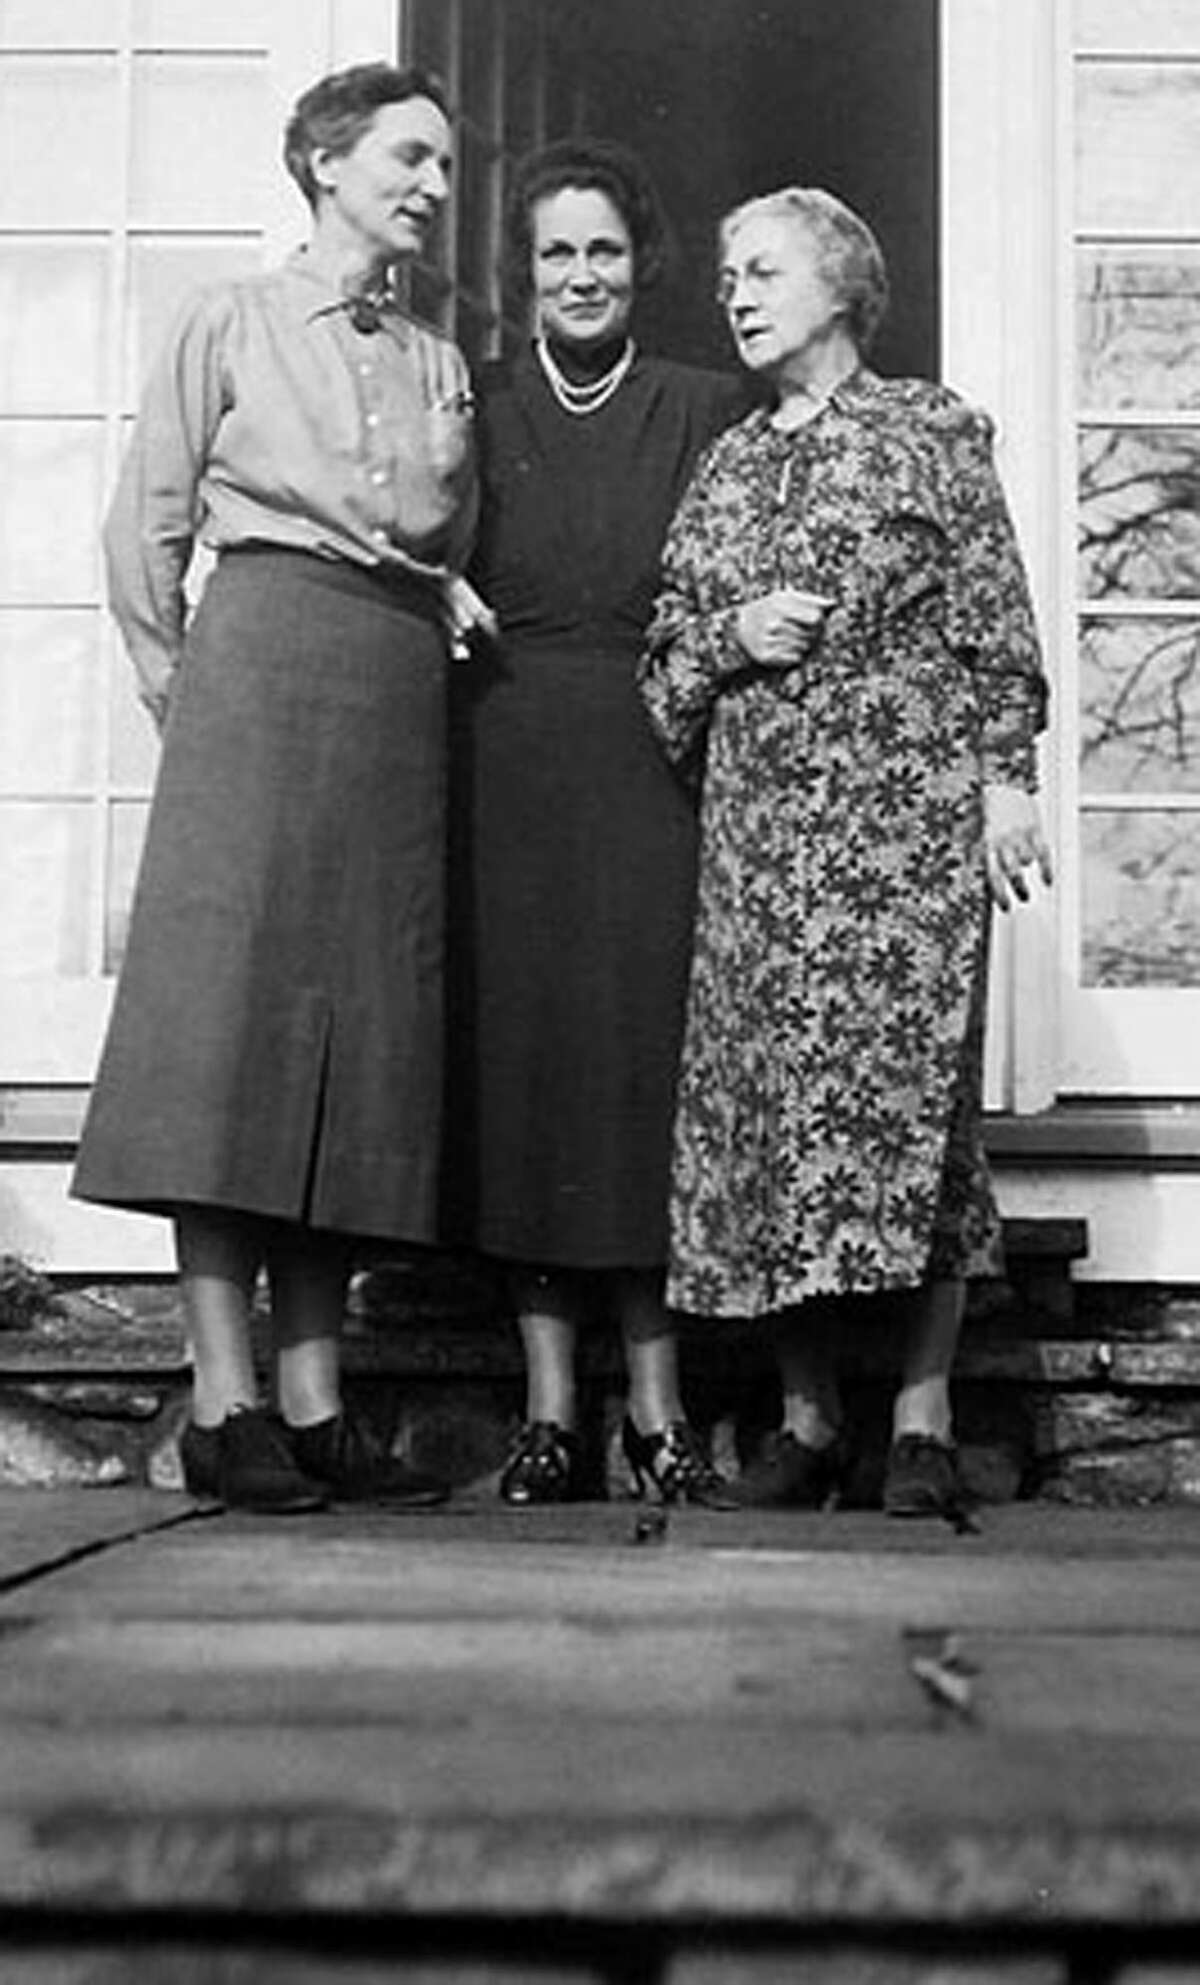 Renowned landscape architect Beatrix Farrand, left, shares a moment at Three Rivers Farm with Antoinette Peterson, right, wife of farm owner Dr. Frederick Peterson, and an unknown guest. Courtesy of Promisek